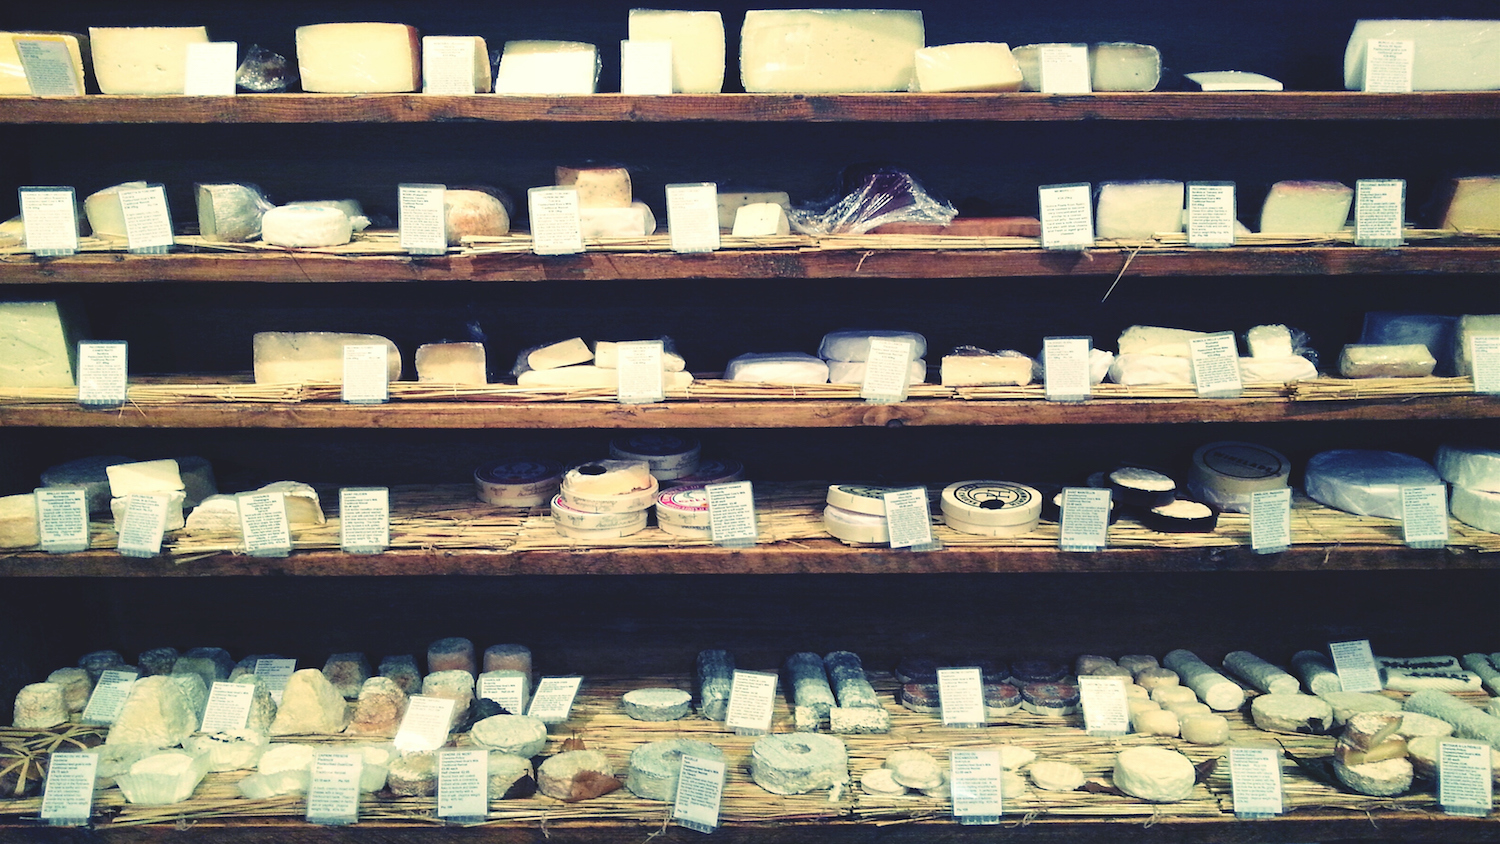 Want to Eat Cheese All Day? This Is the Job for You